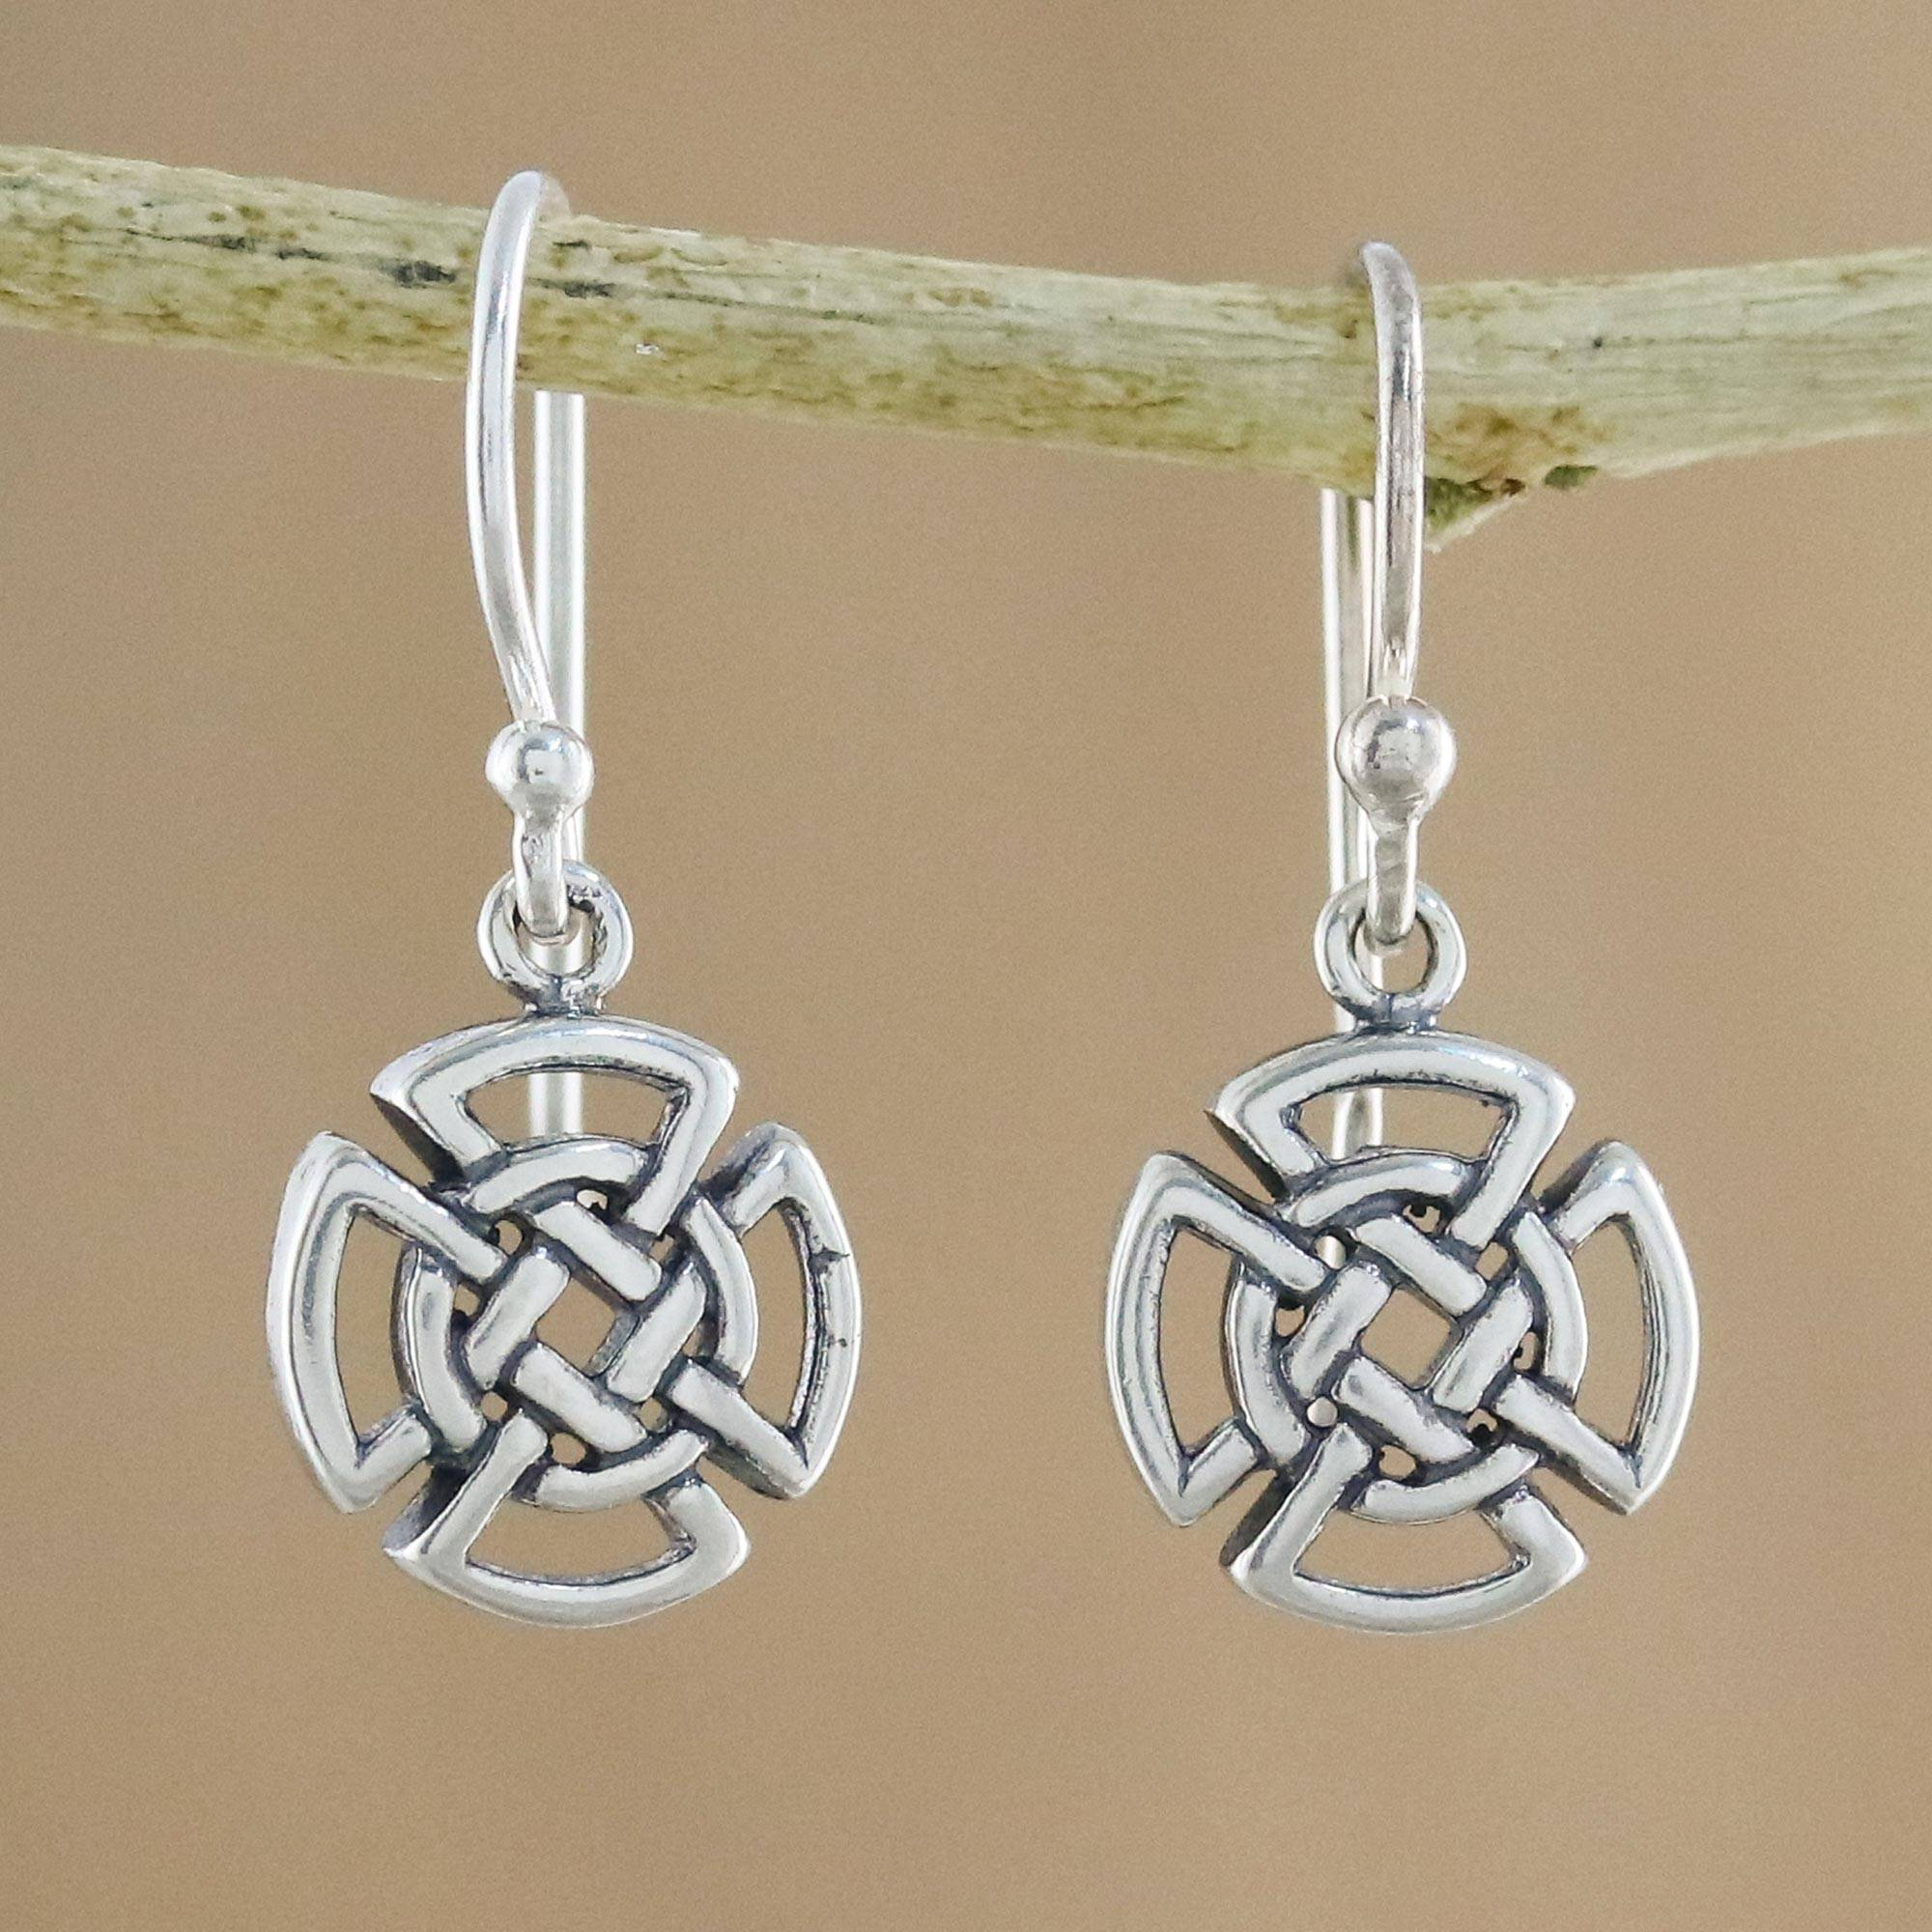 167c711ce Sterling Silver Celtic Knot Cross Earrings from Thailand,